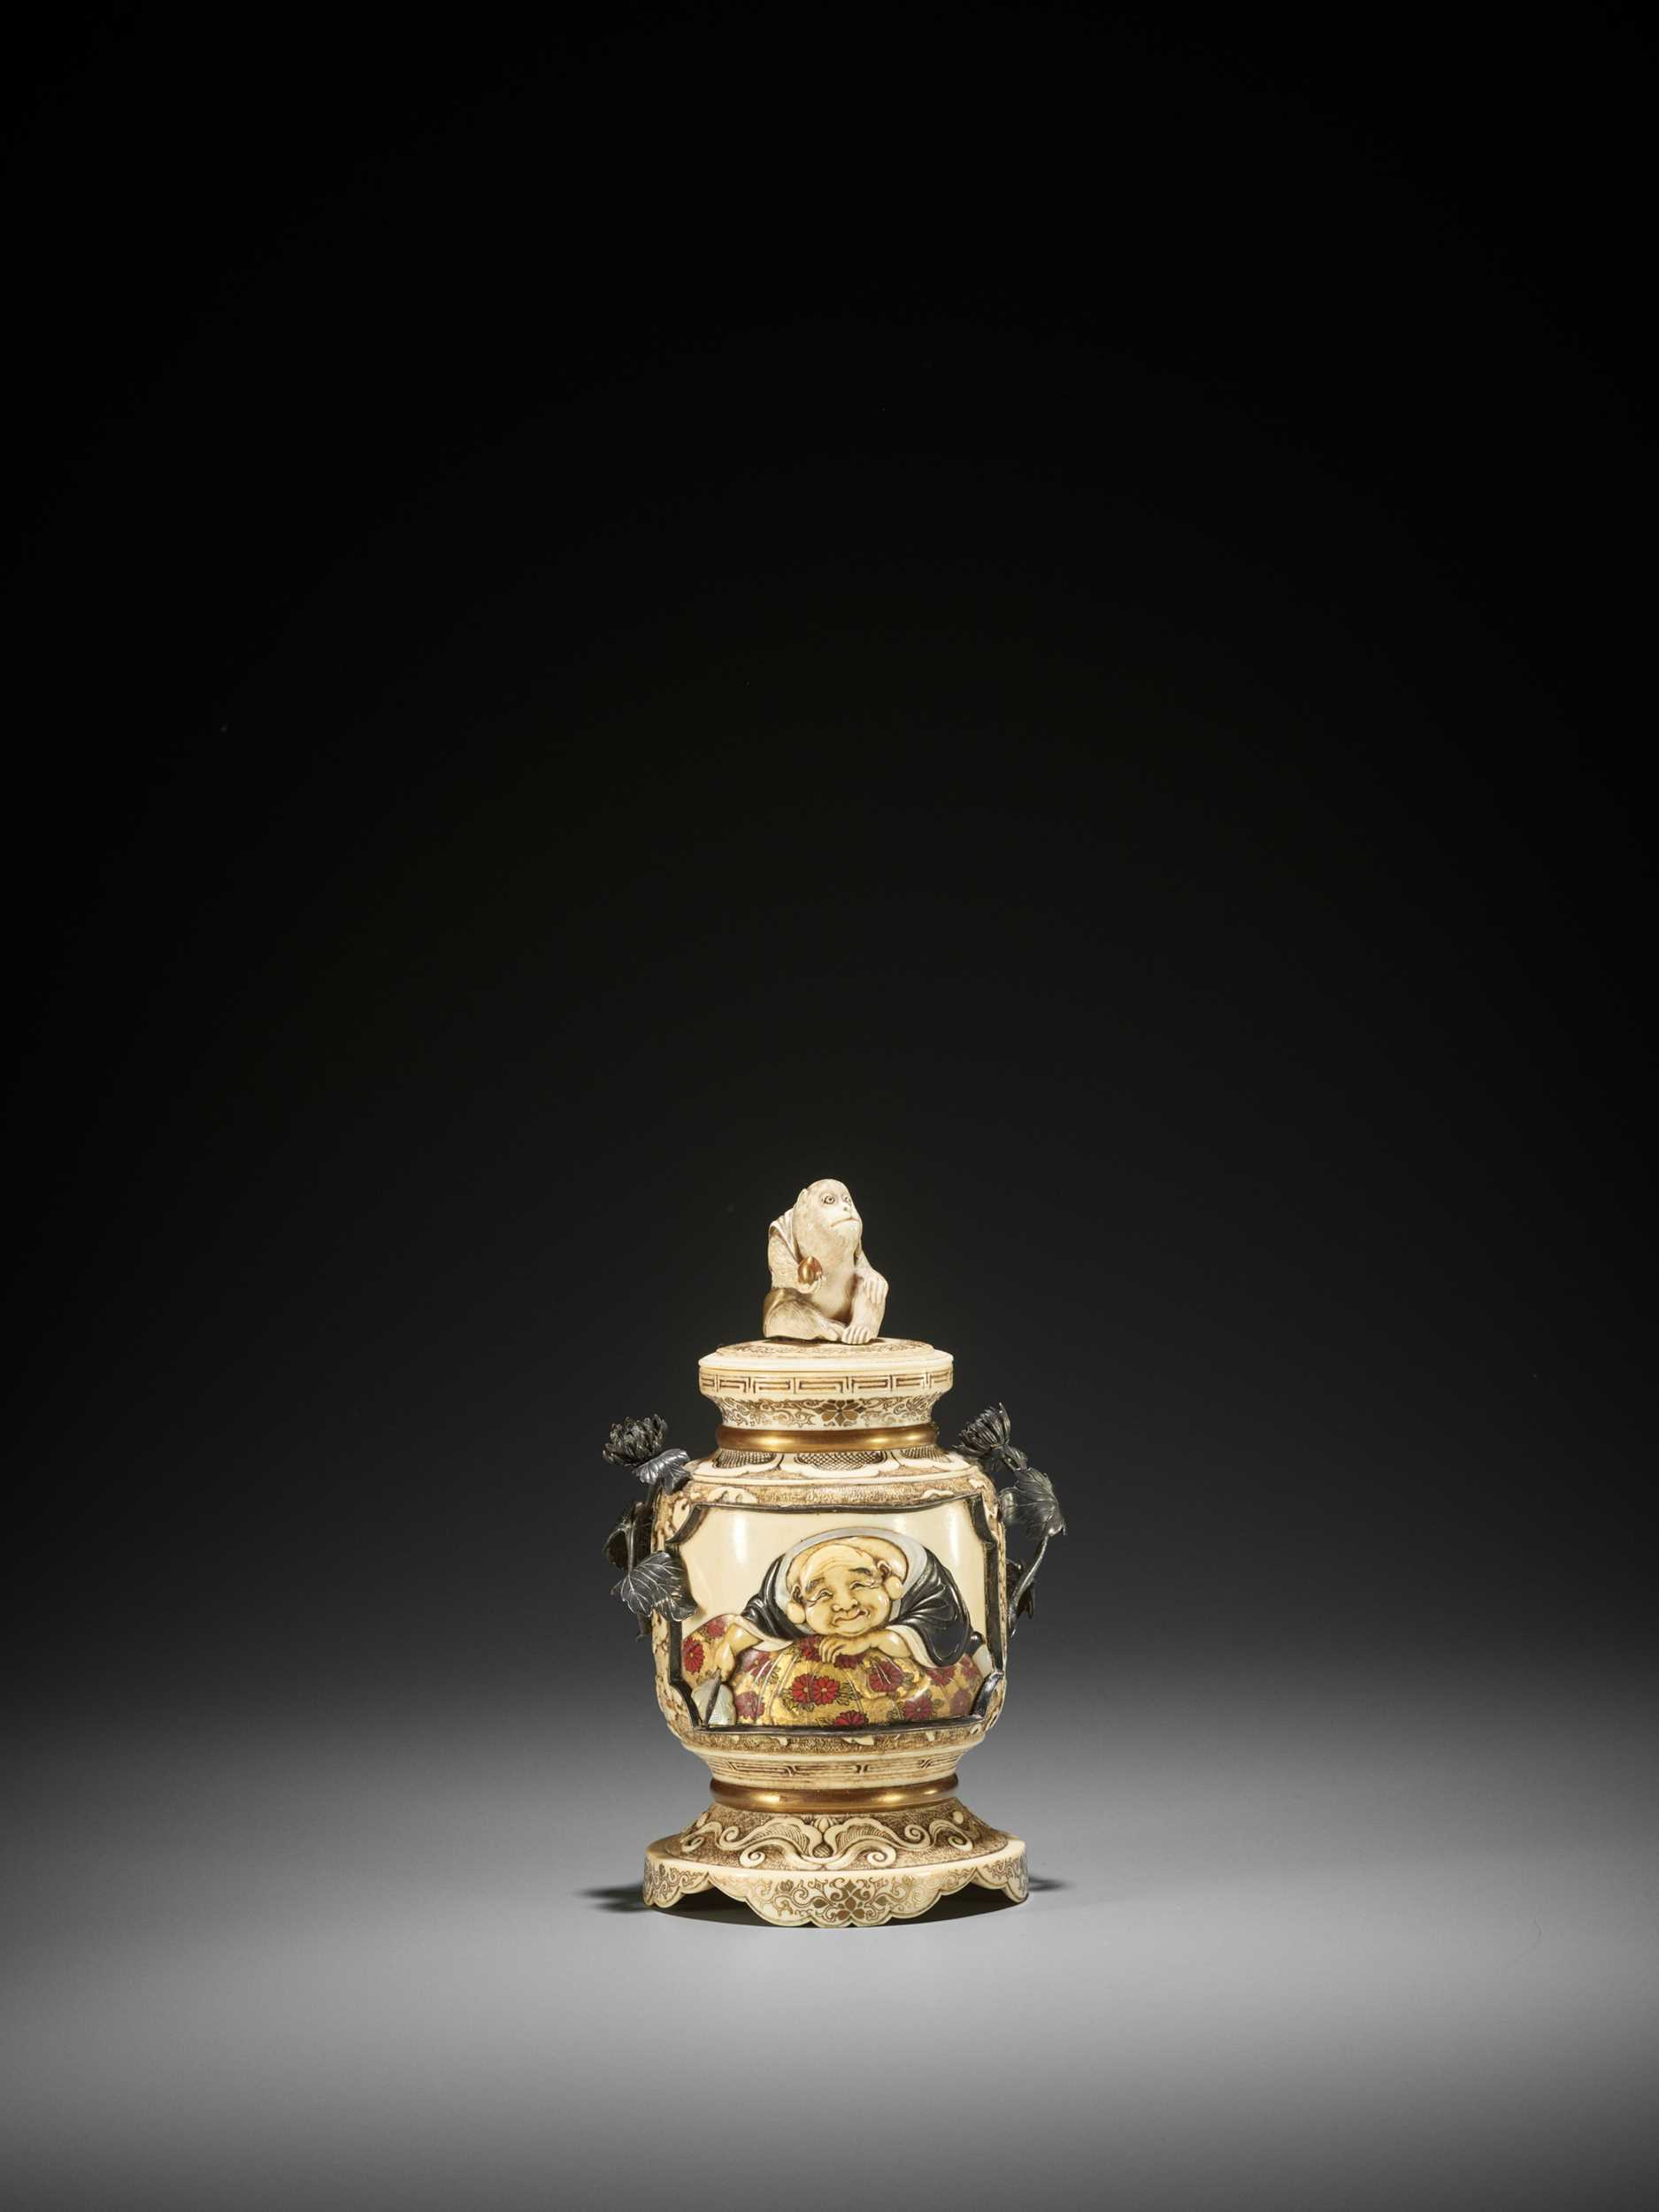 Lot 167 - A SMALL SHIBAYAMA INLAID IVORY 'KORO' JAR AND COVER WITH A MONKEY FINIAL